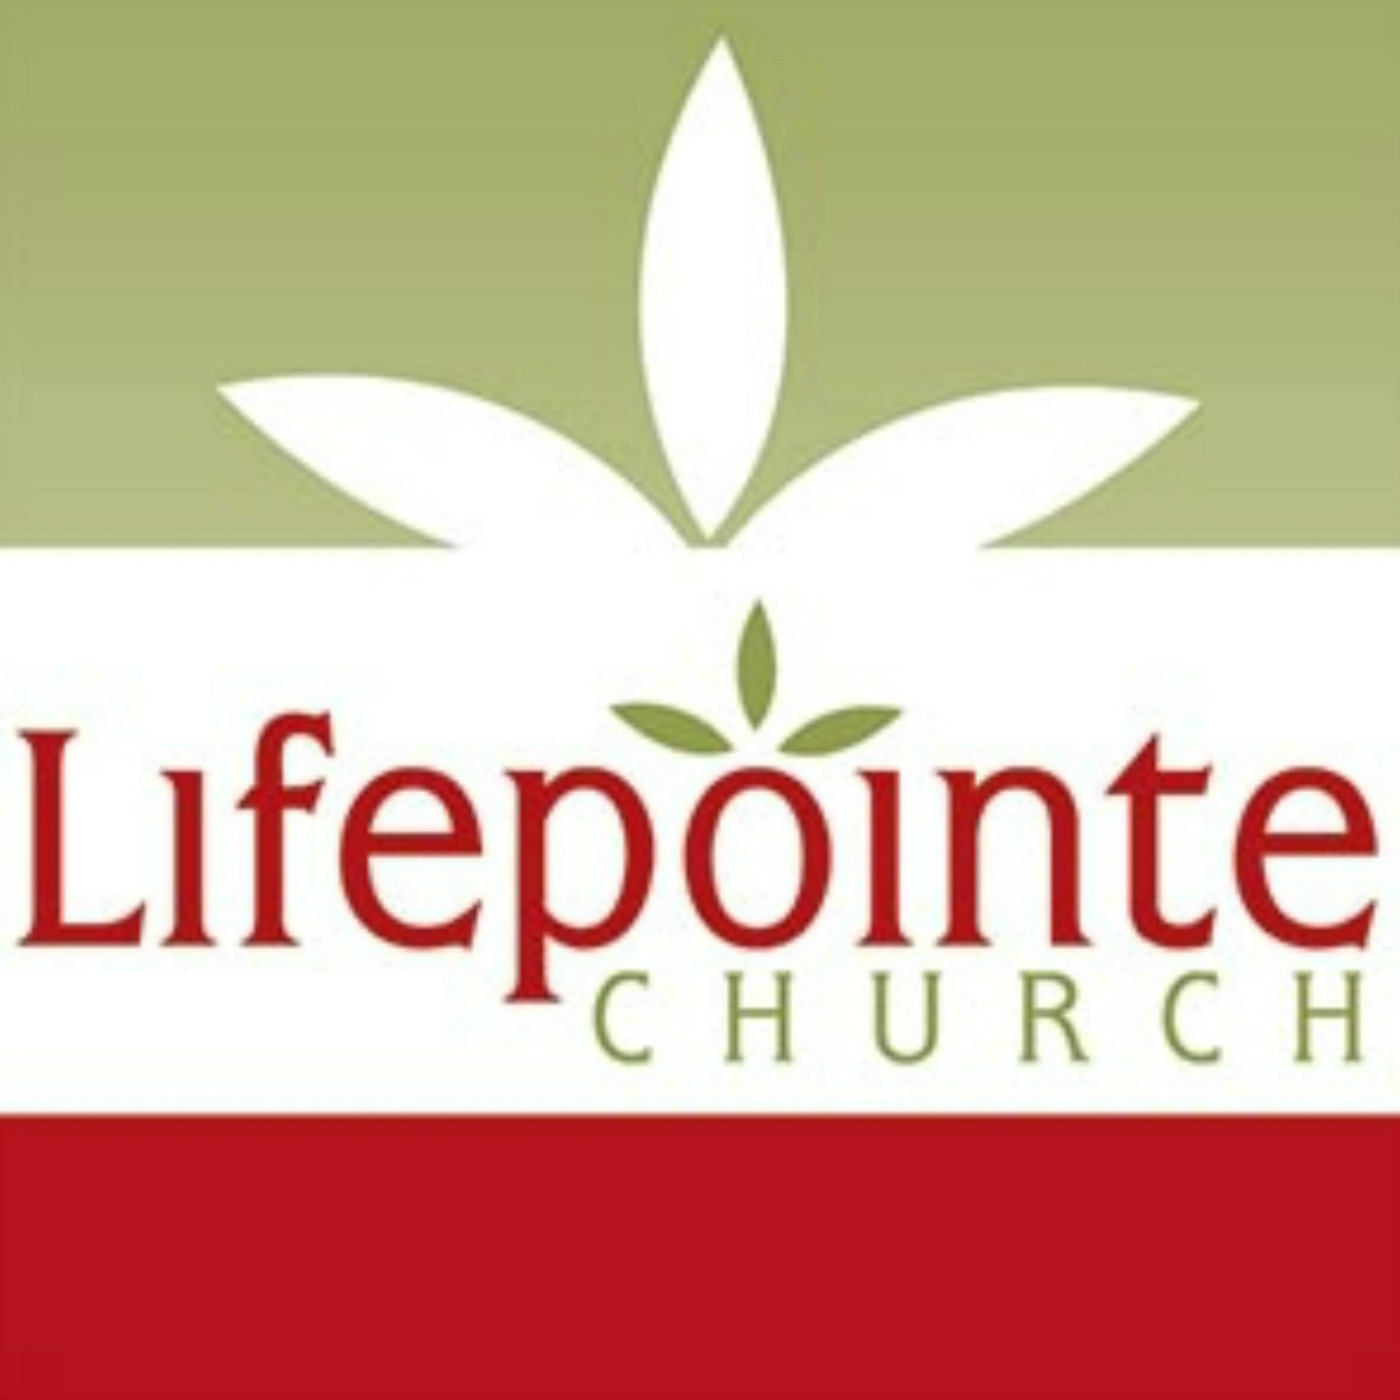 Lifepointe Church